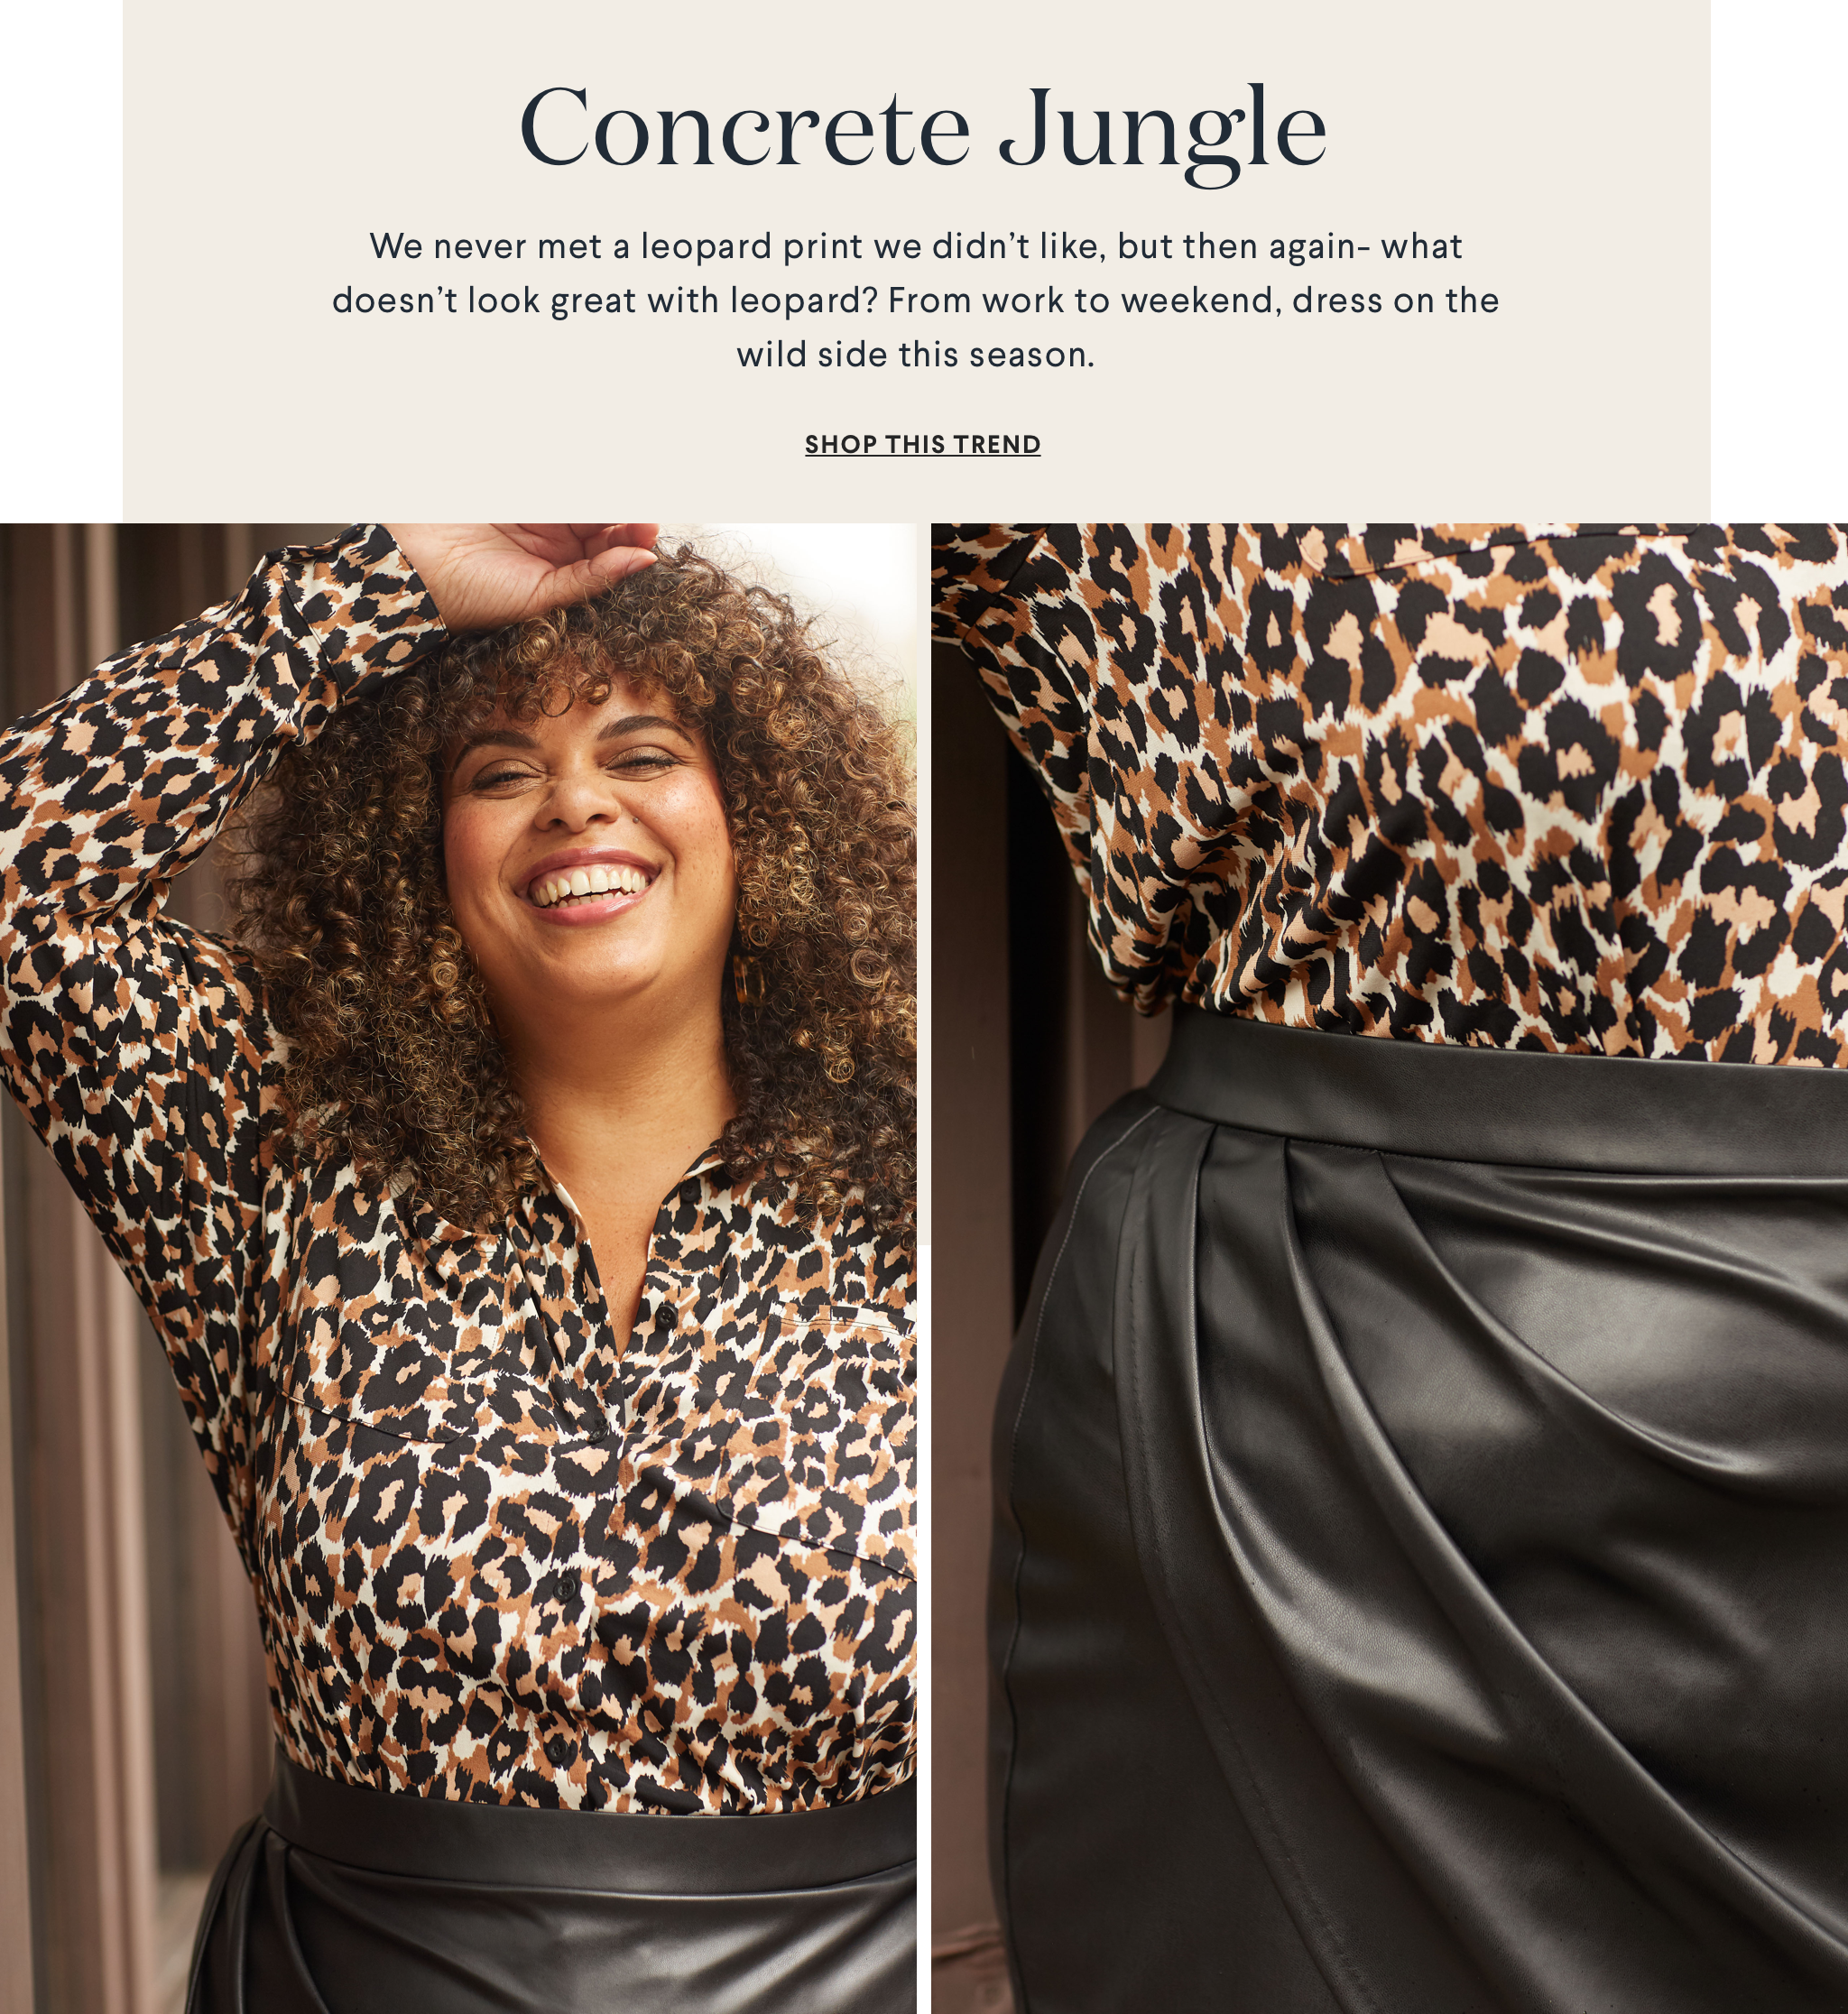 Concrete Jungle. We never met a leopard print we didn't like, but then again - what doesn't look great with leopard? From work to weekend, dress on the wild side this season.